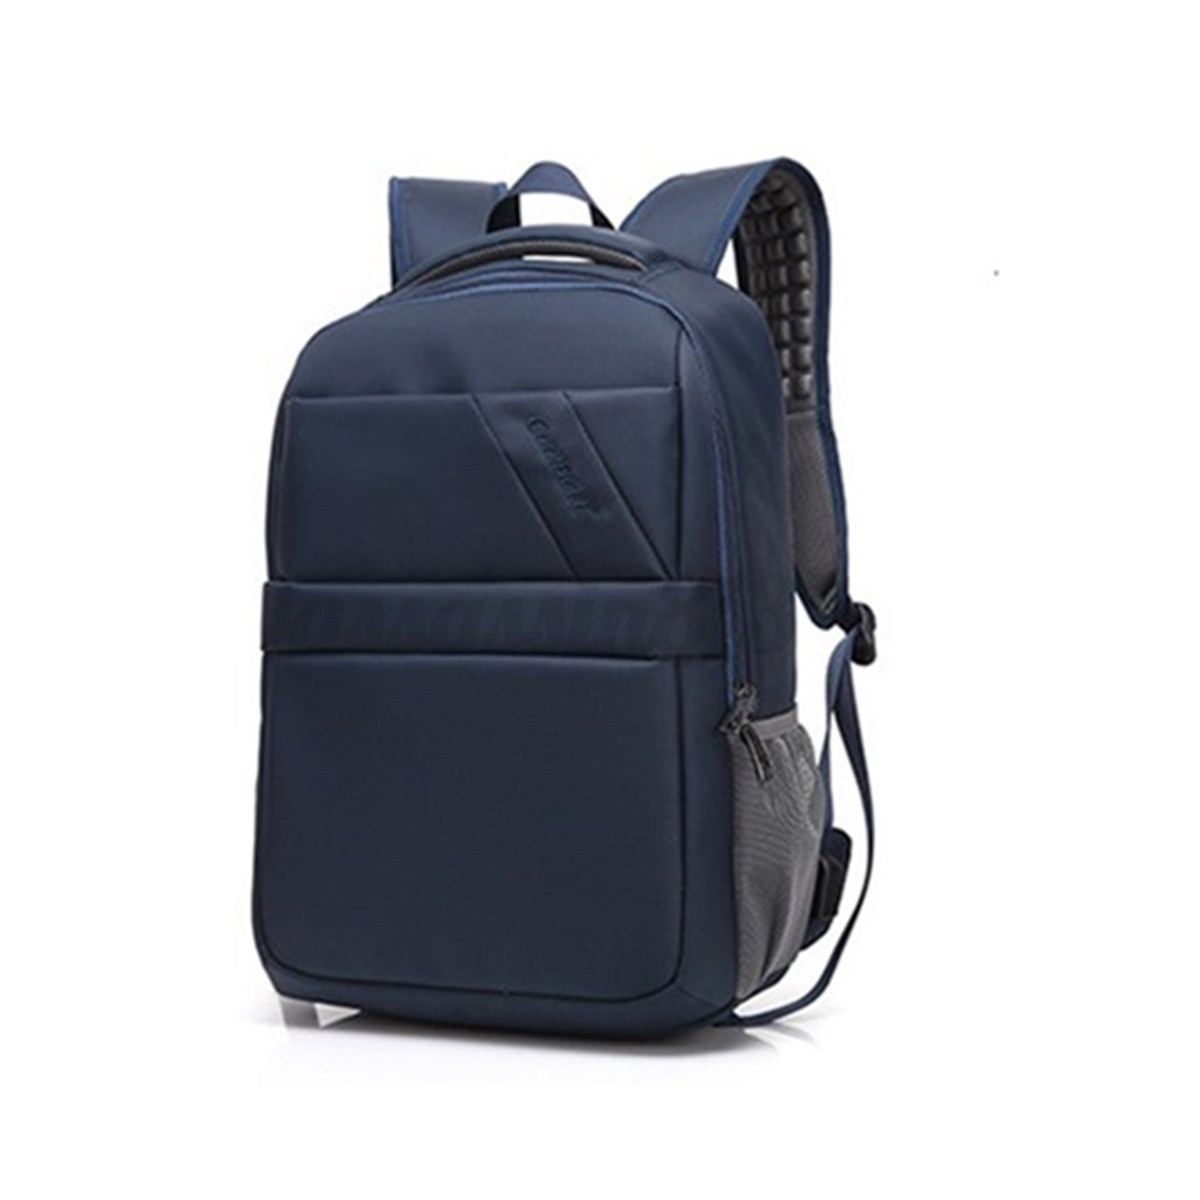 Laptop School Bag Fashion Anti Theft Backpack Usb Port Charge Travel School